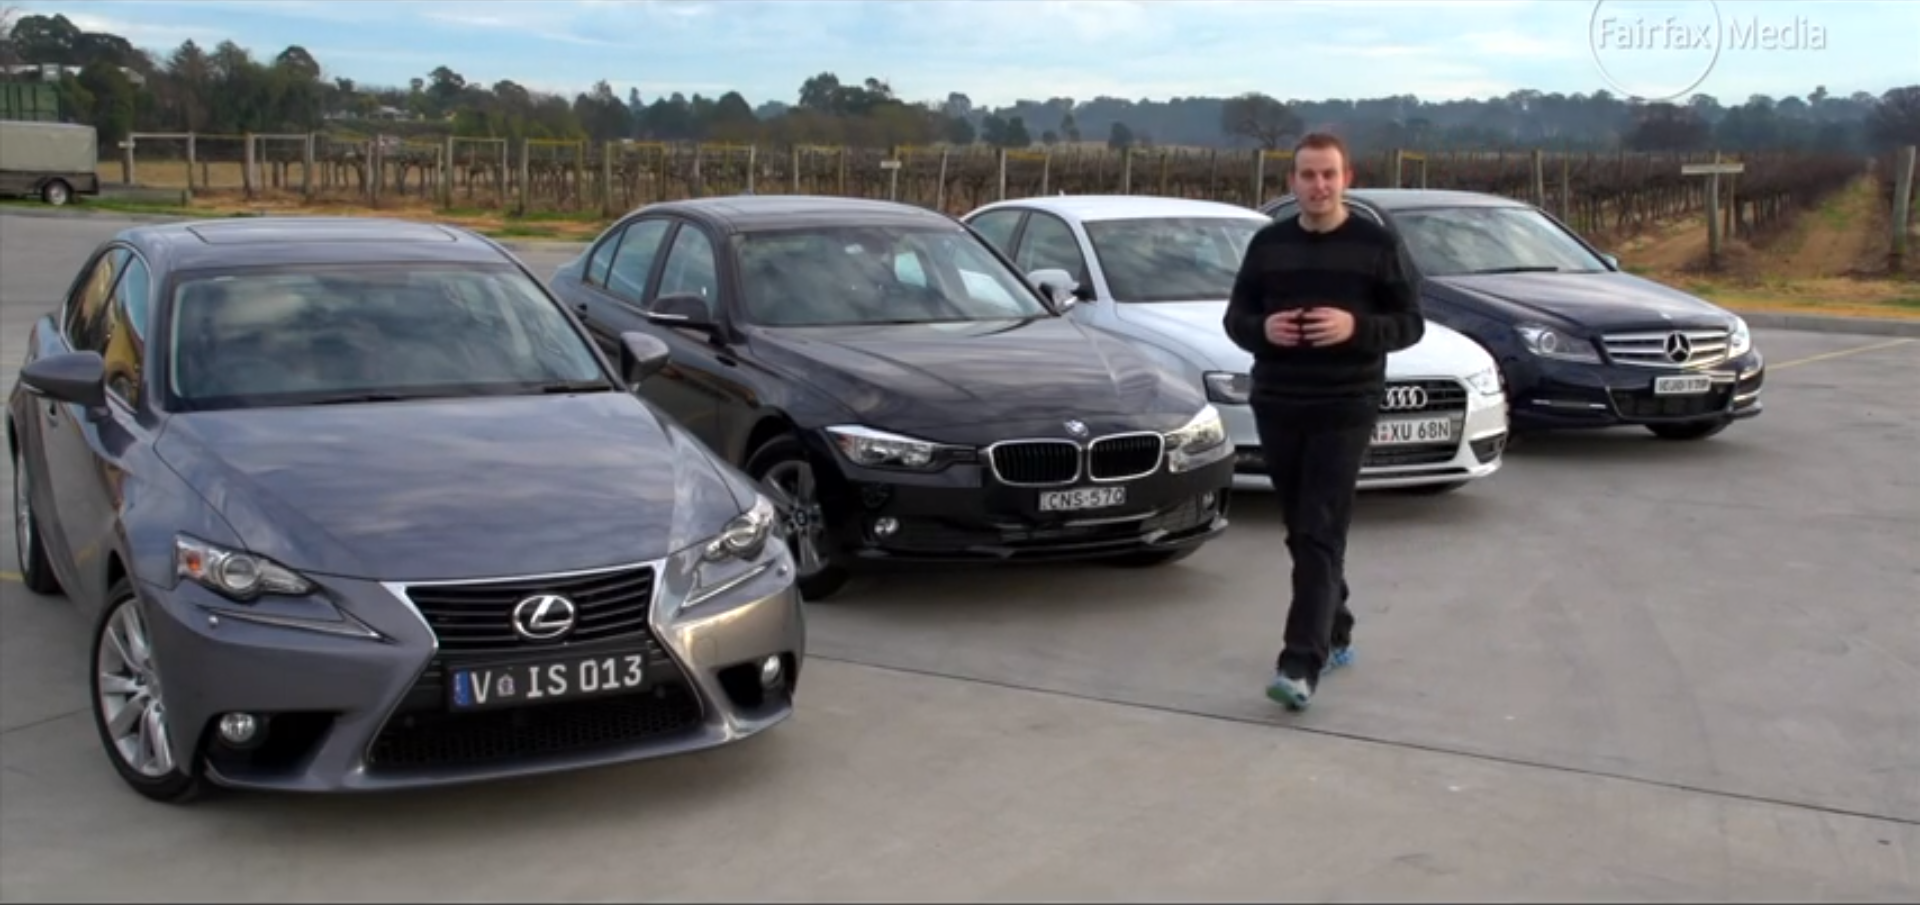 Bmw 316i Vs Lexus Is250 Vs Mercedes Benz C200 Vs Audi A4 Comparison